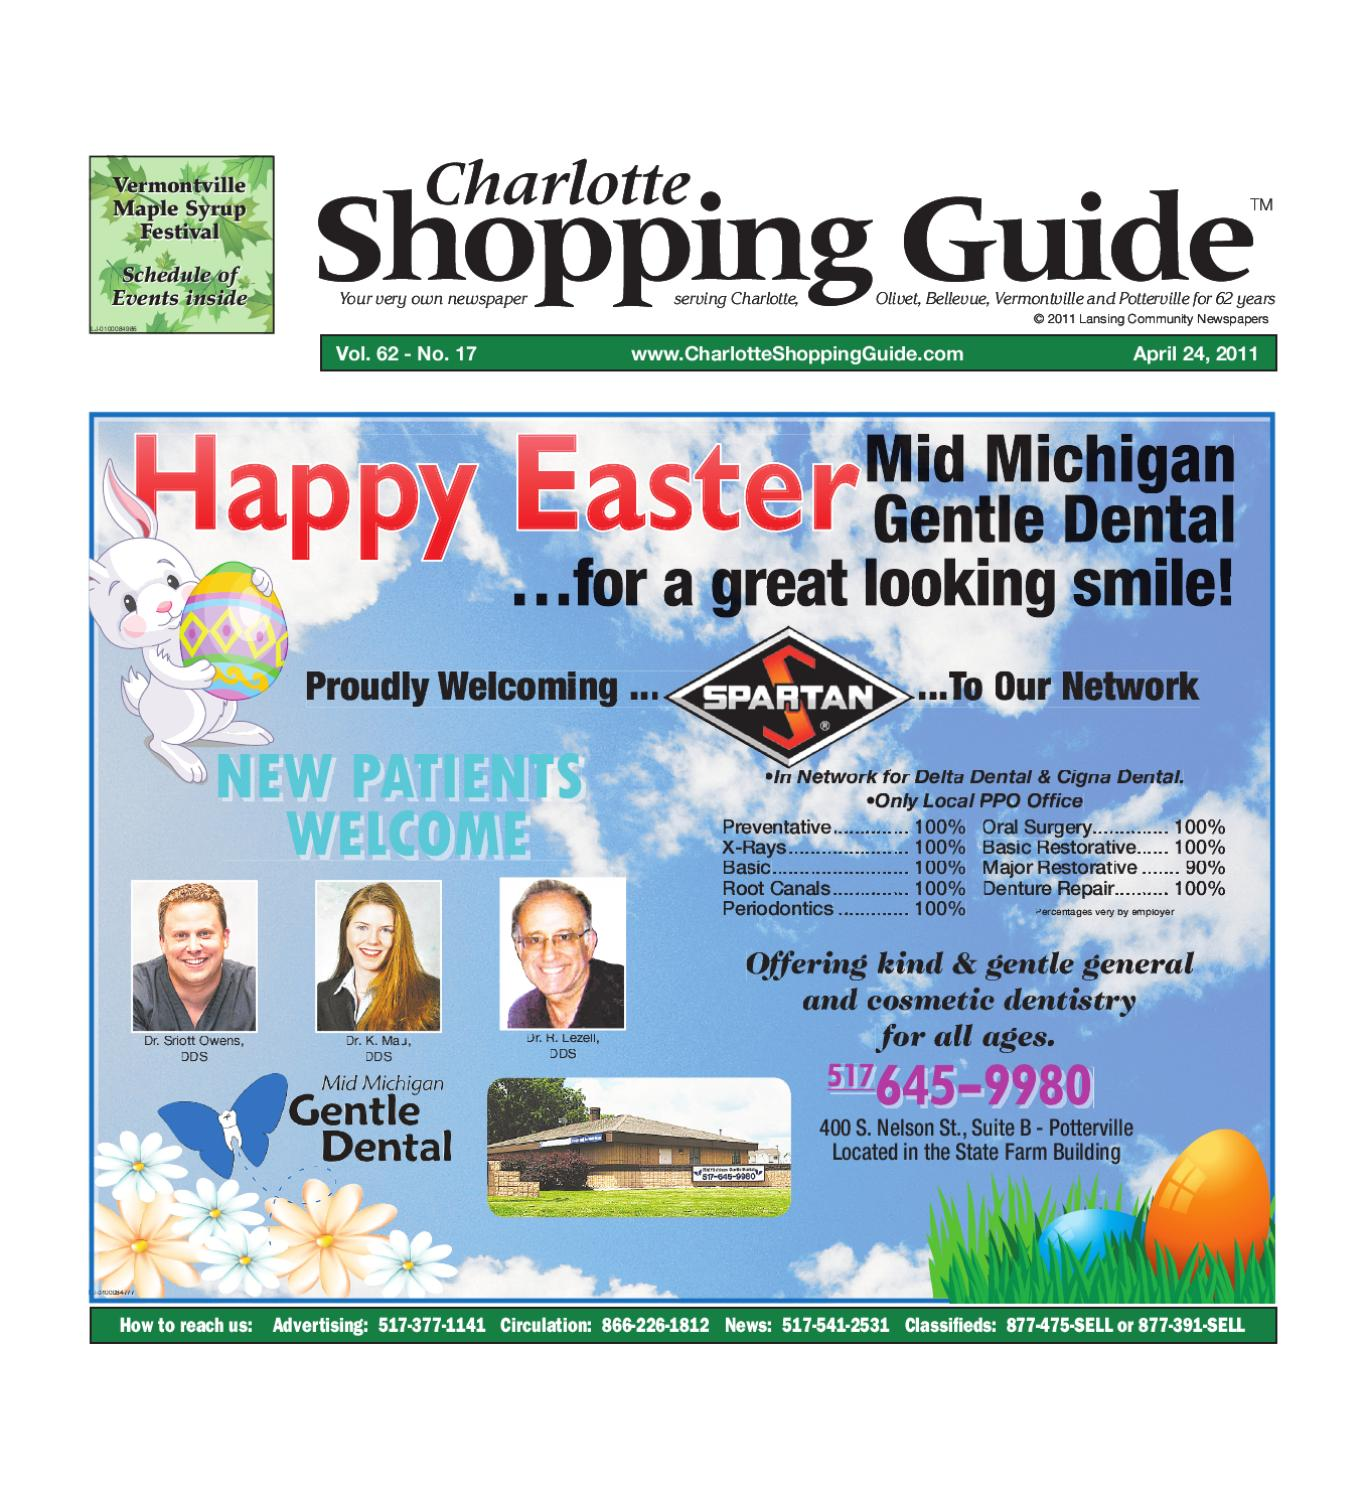 Chartotte shopping guide by lansing state journal issuu.